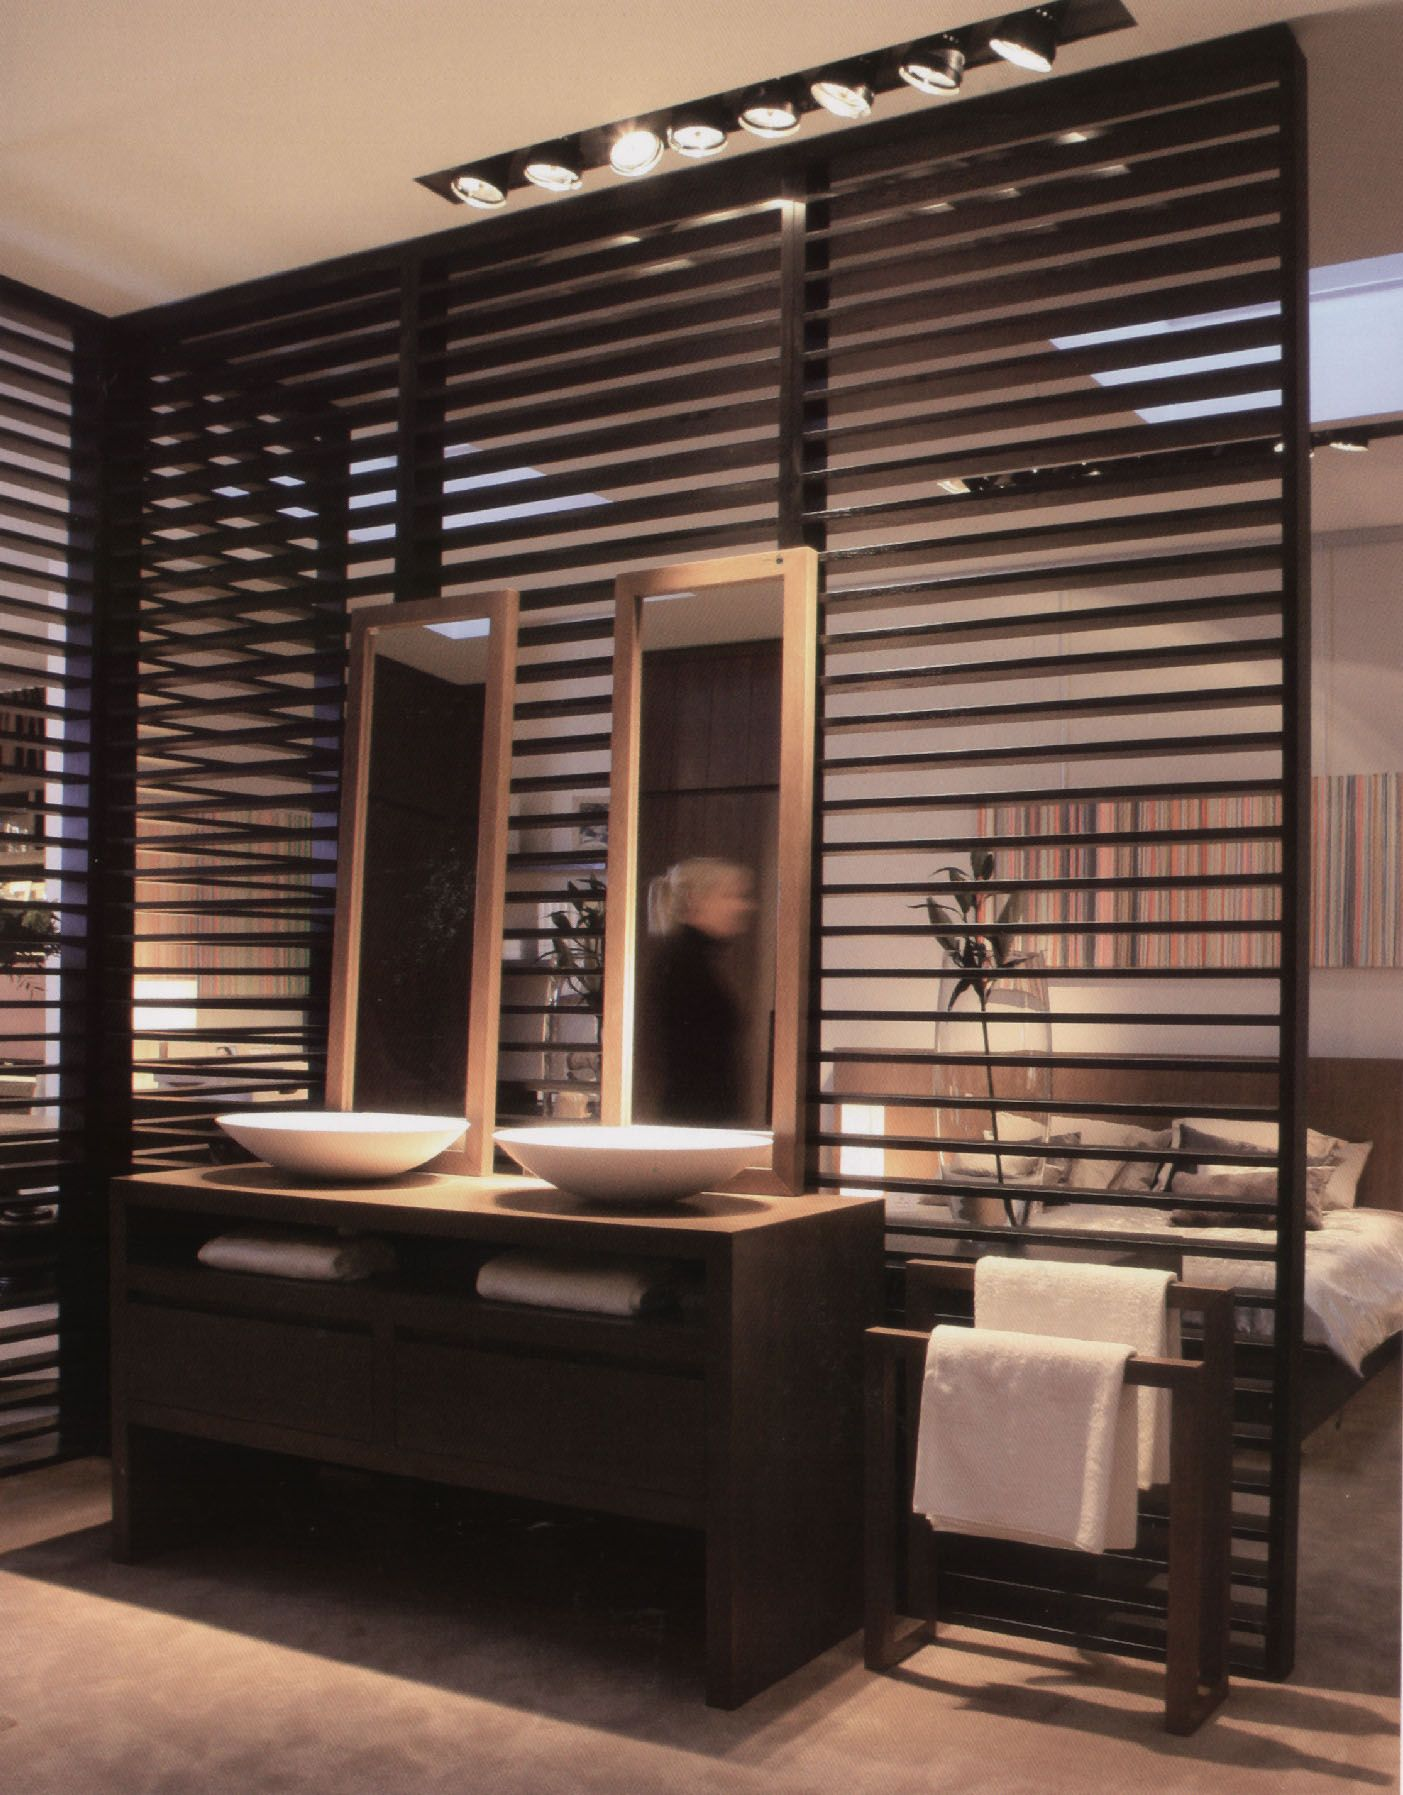 Wooden Partition Wall Between Bathroom And Bedroom Salle De